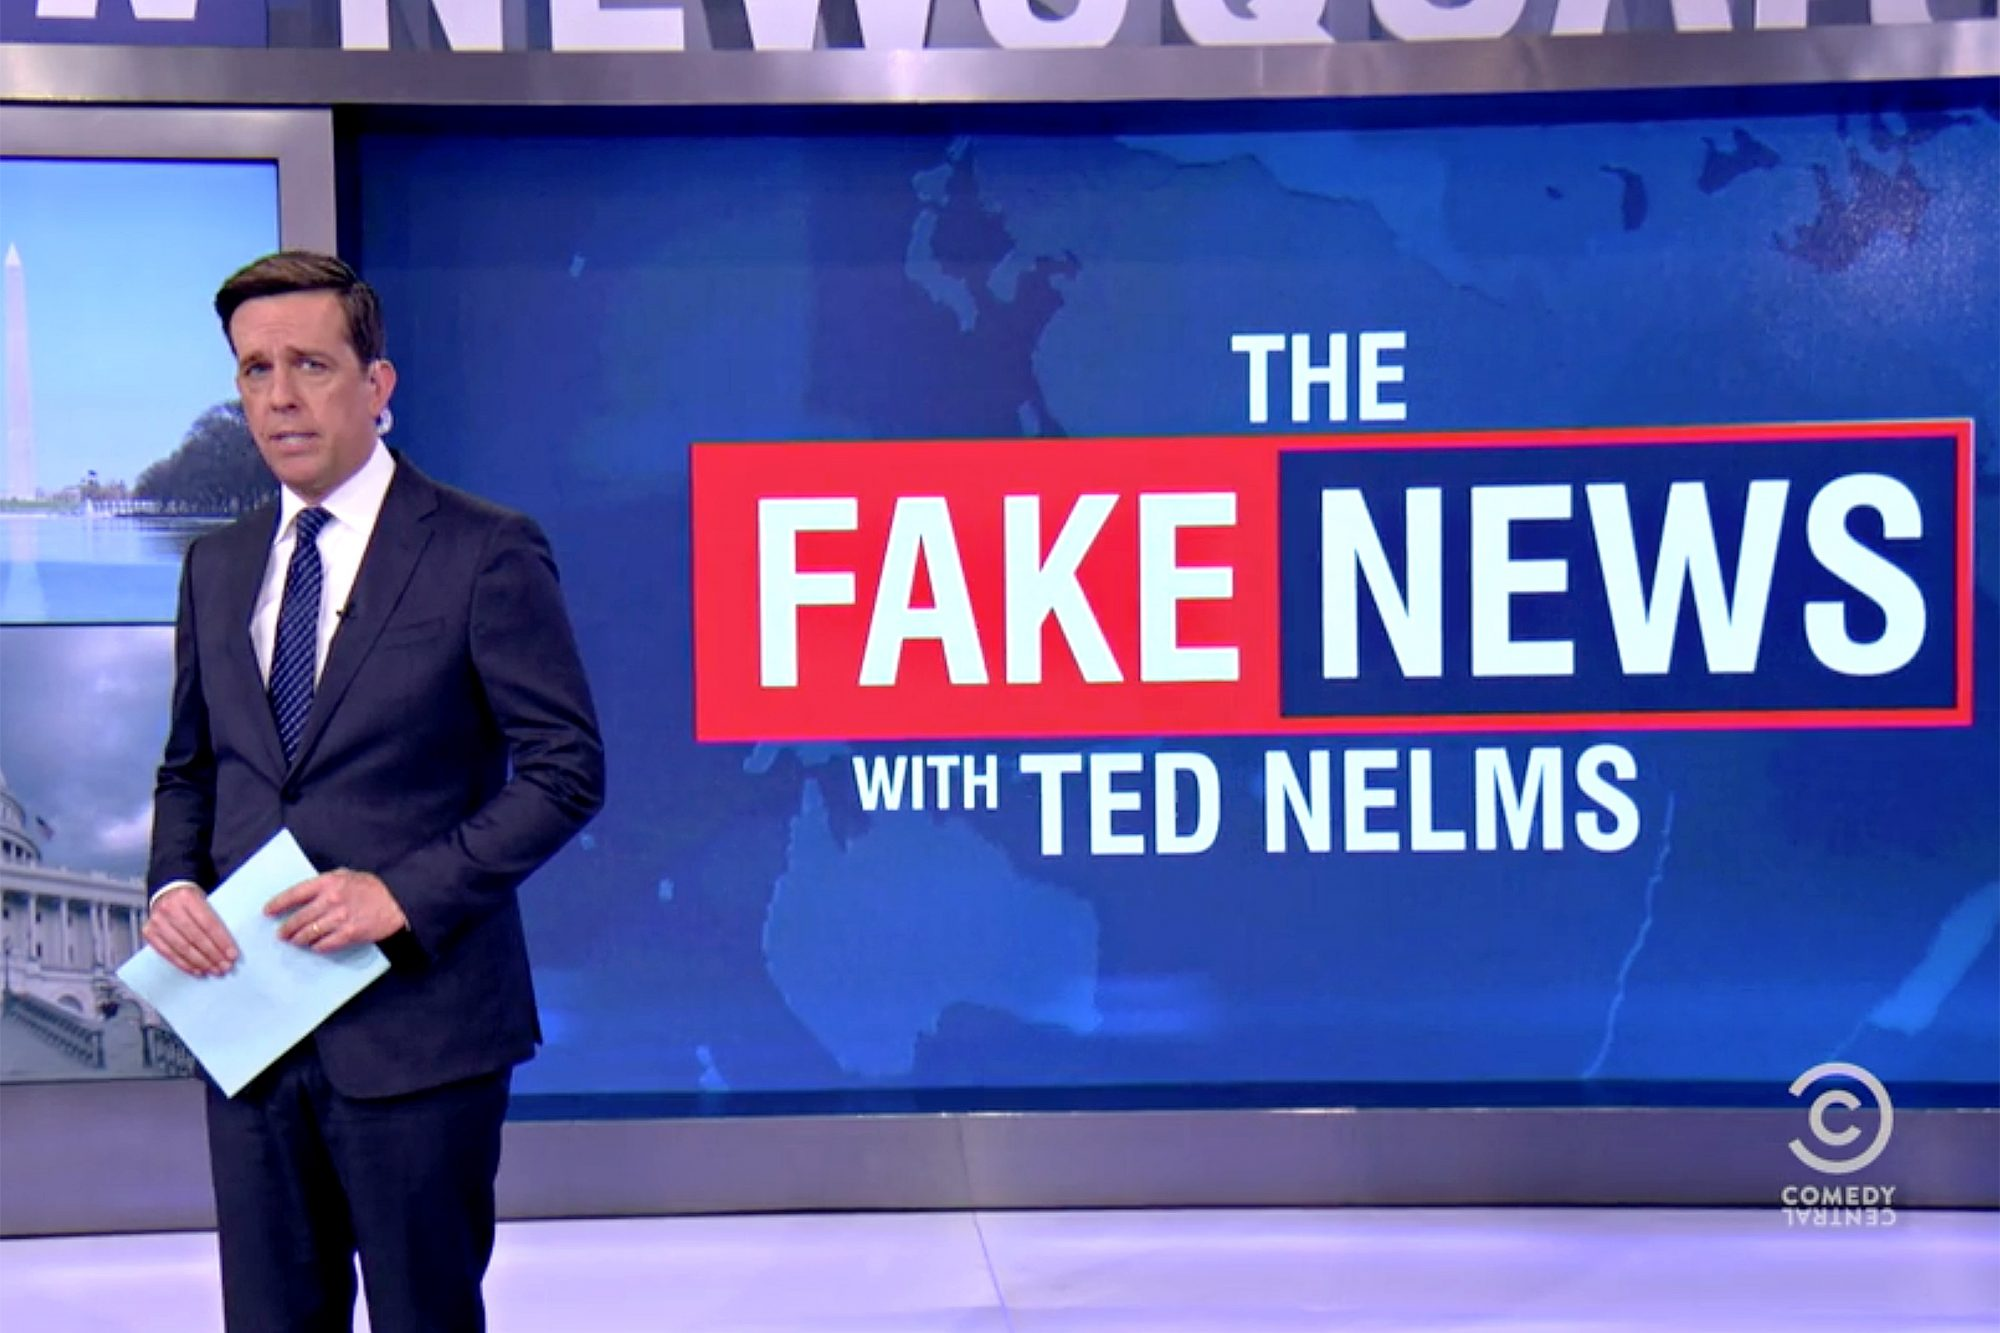 Fake News with Ted Nelms